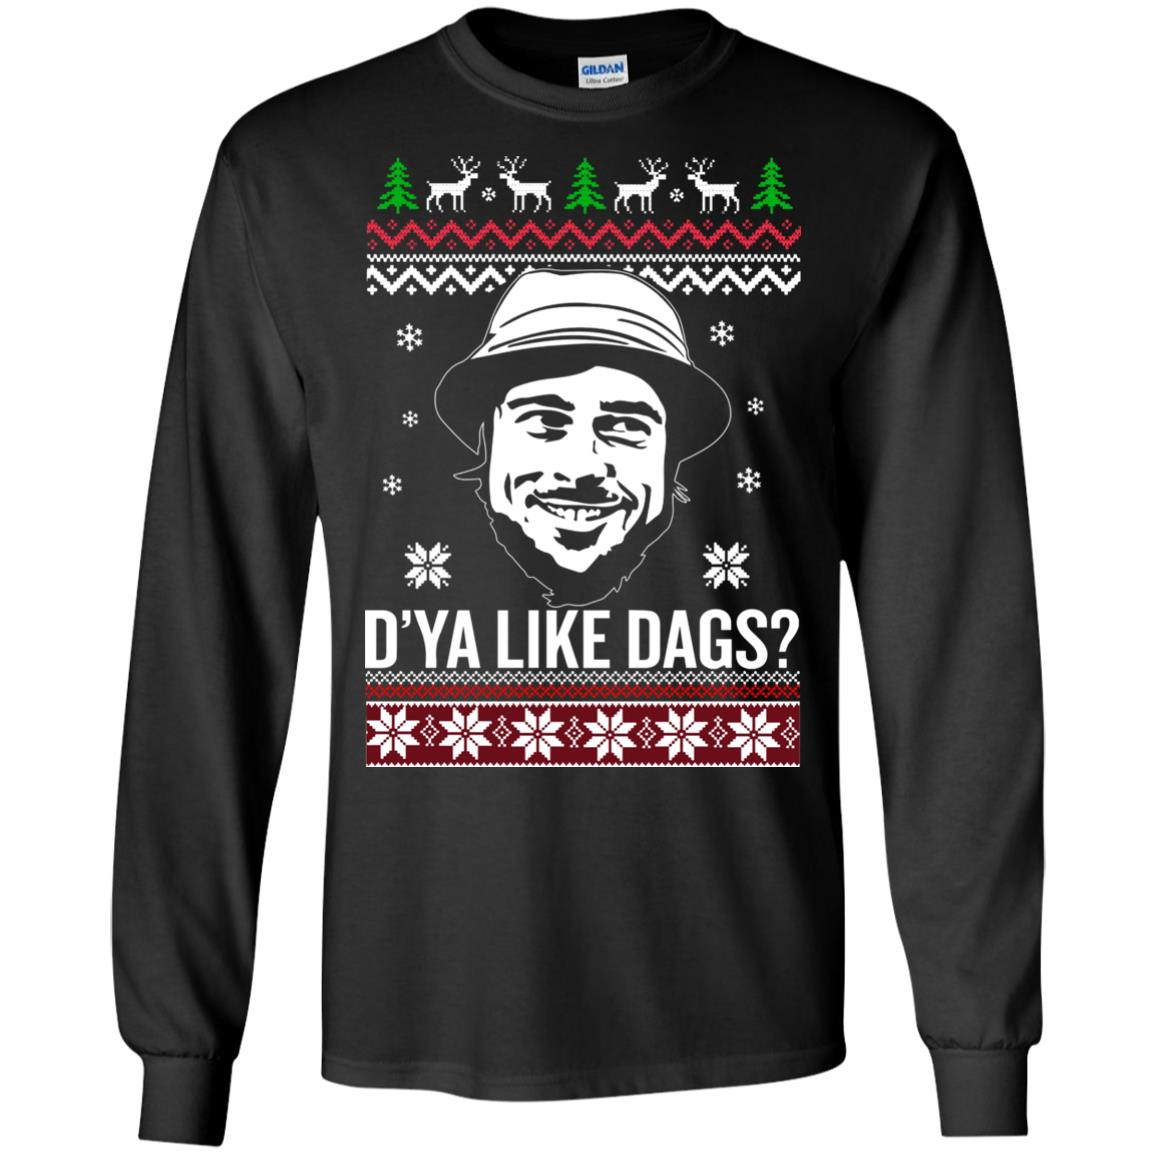 image 3150 - The Snatch D'ya like Dags Ugly Sweater, Christmas Sweatshirt